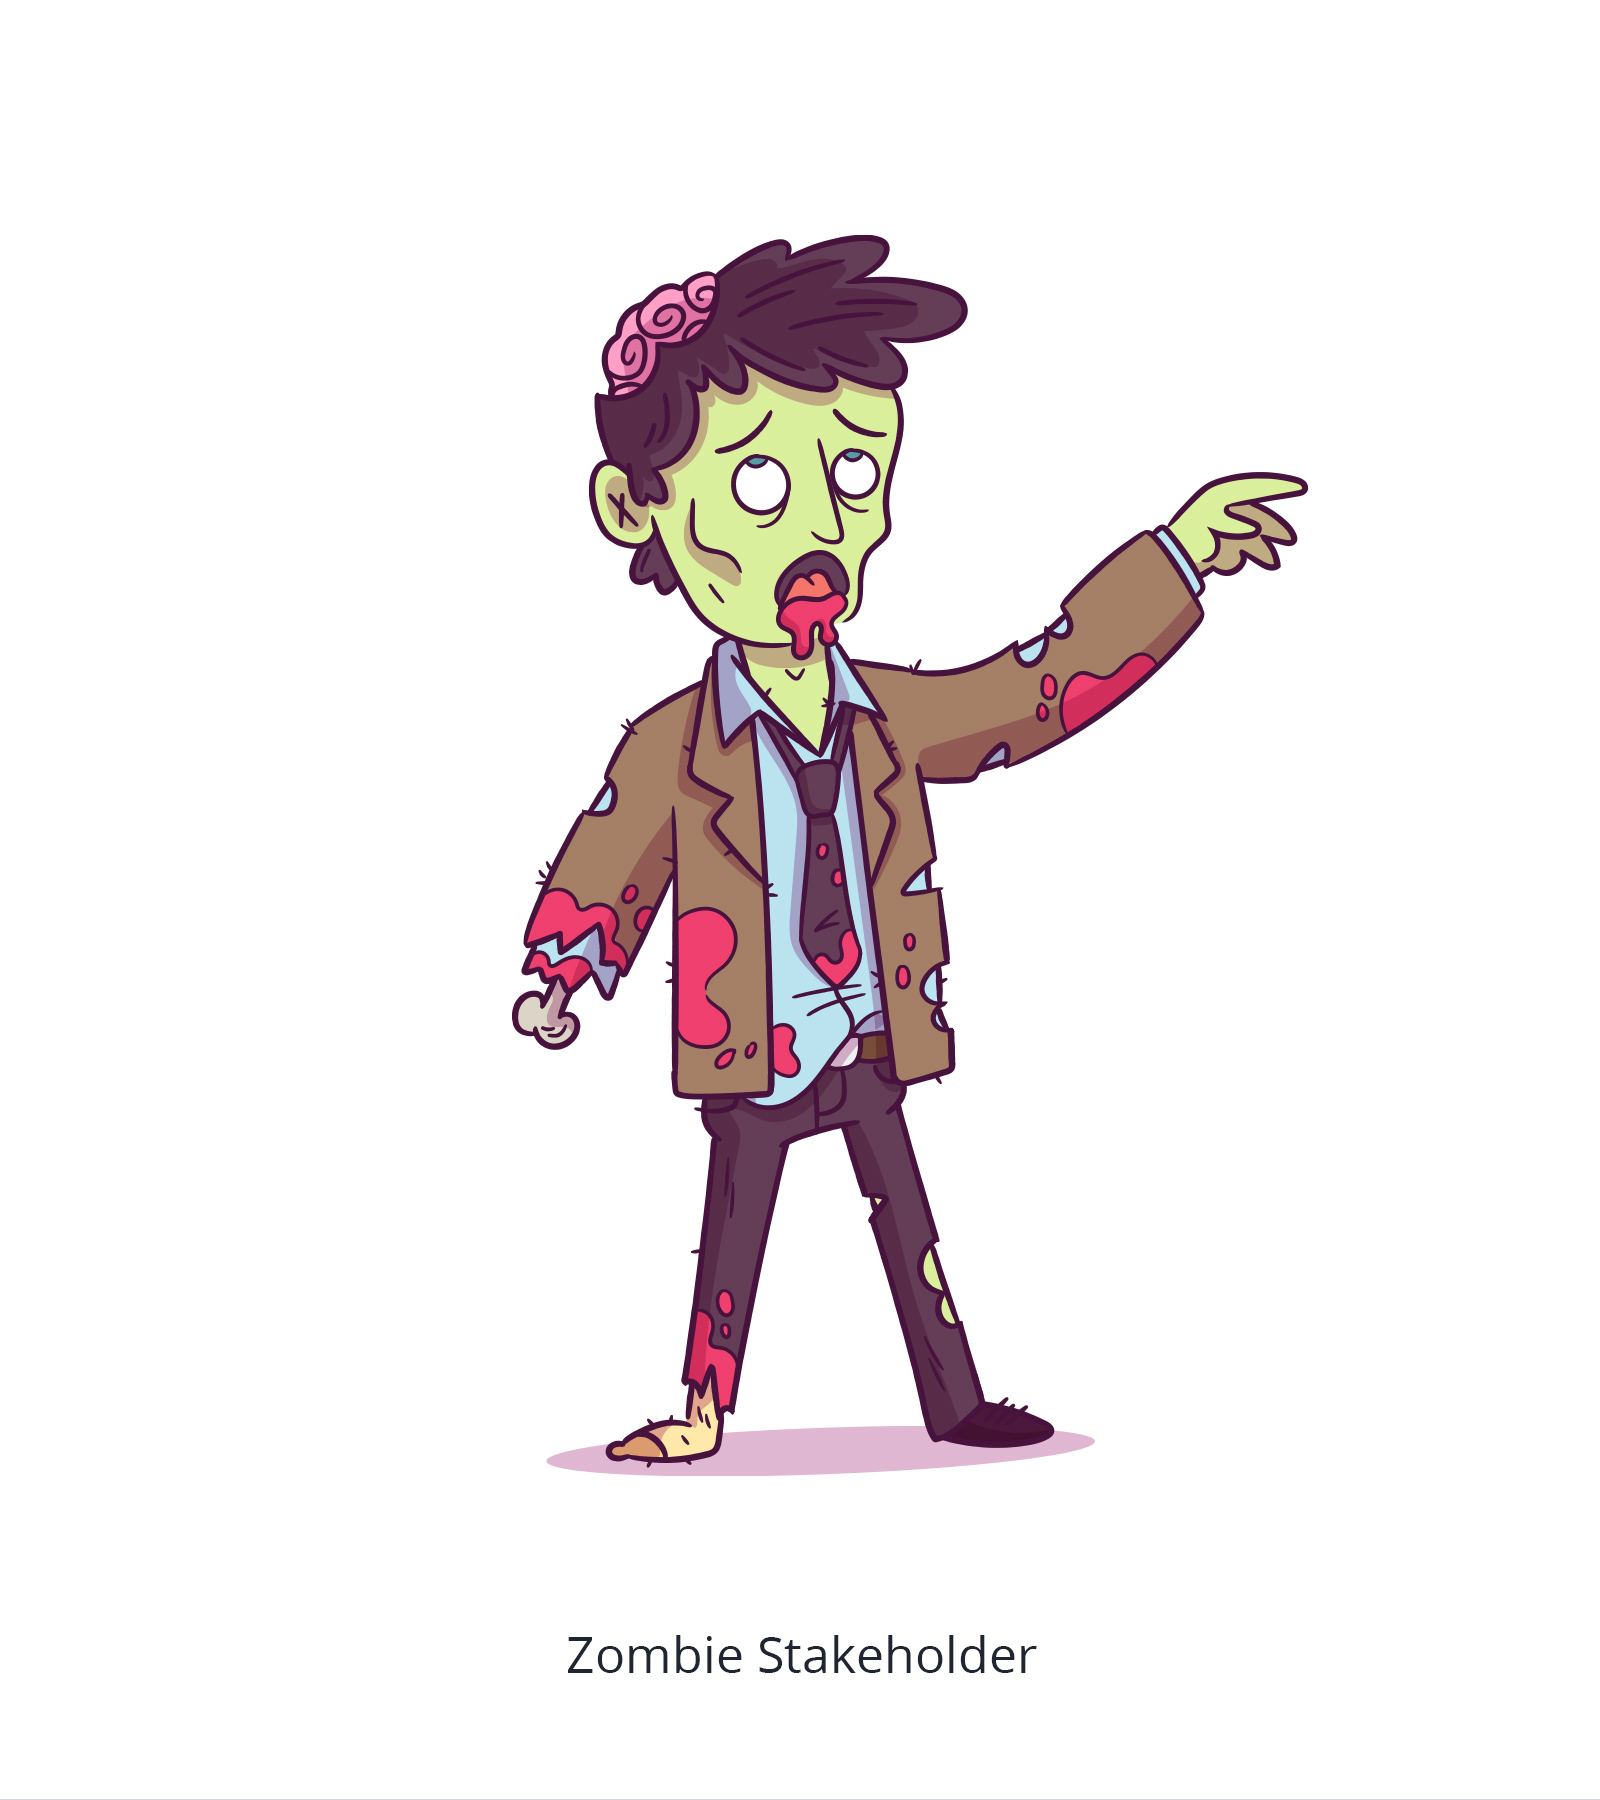 Zombie Stakeholder